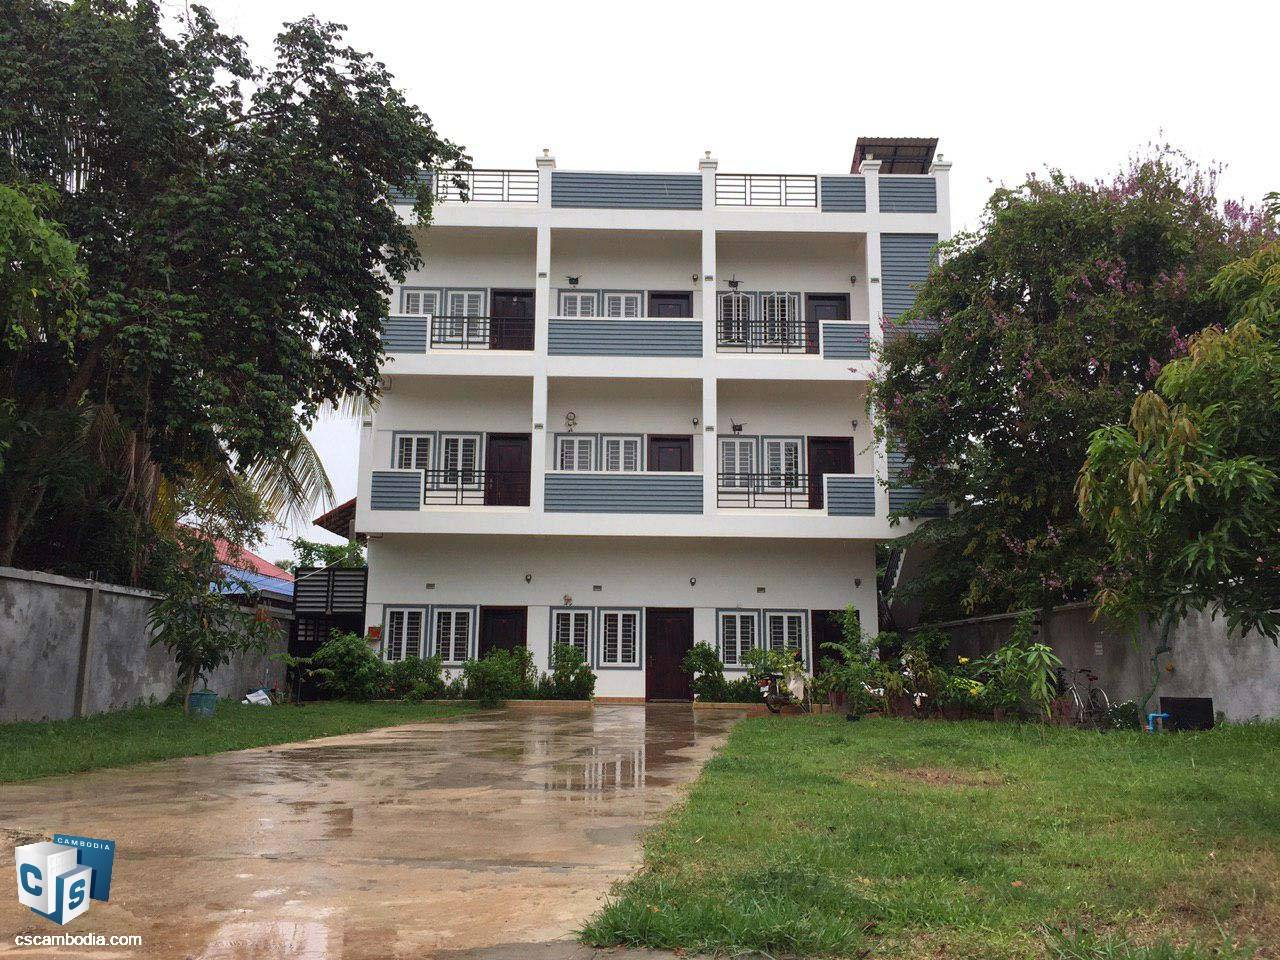 9 unit apartment bulding – For Sale – Treang Village – Sla Kram– Siem Reap